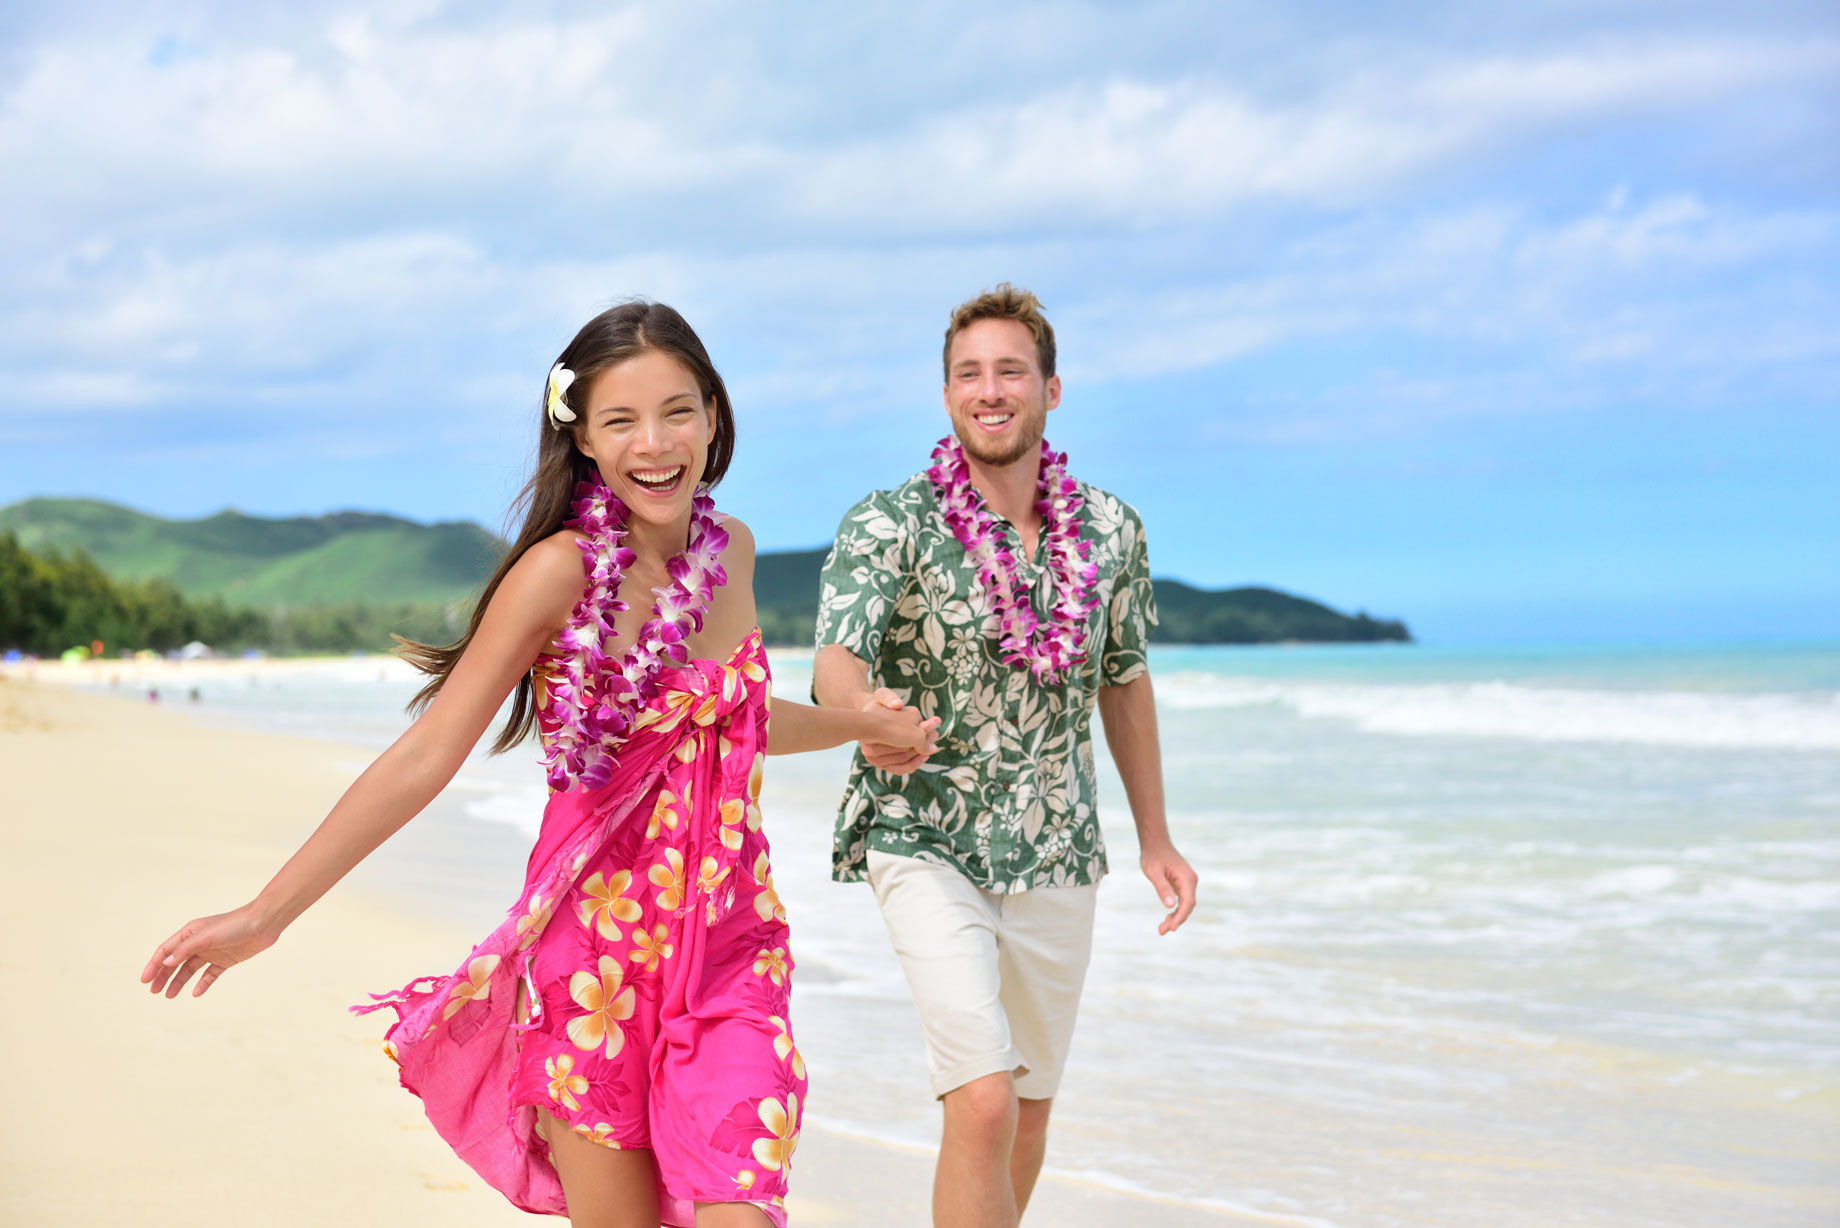 Hawaii Honeymoon: Your Guide to An Unforgettable Honeymoon